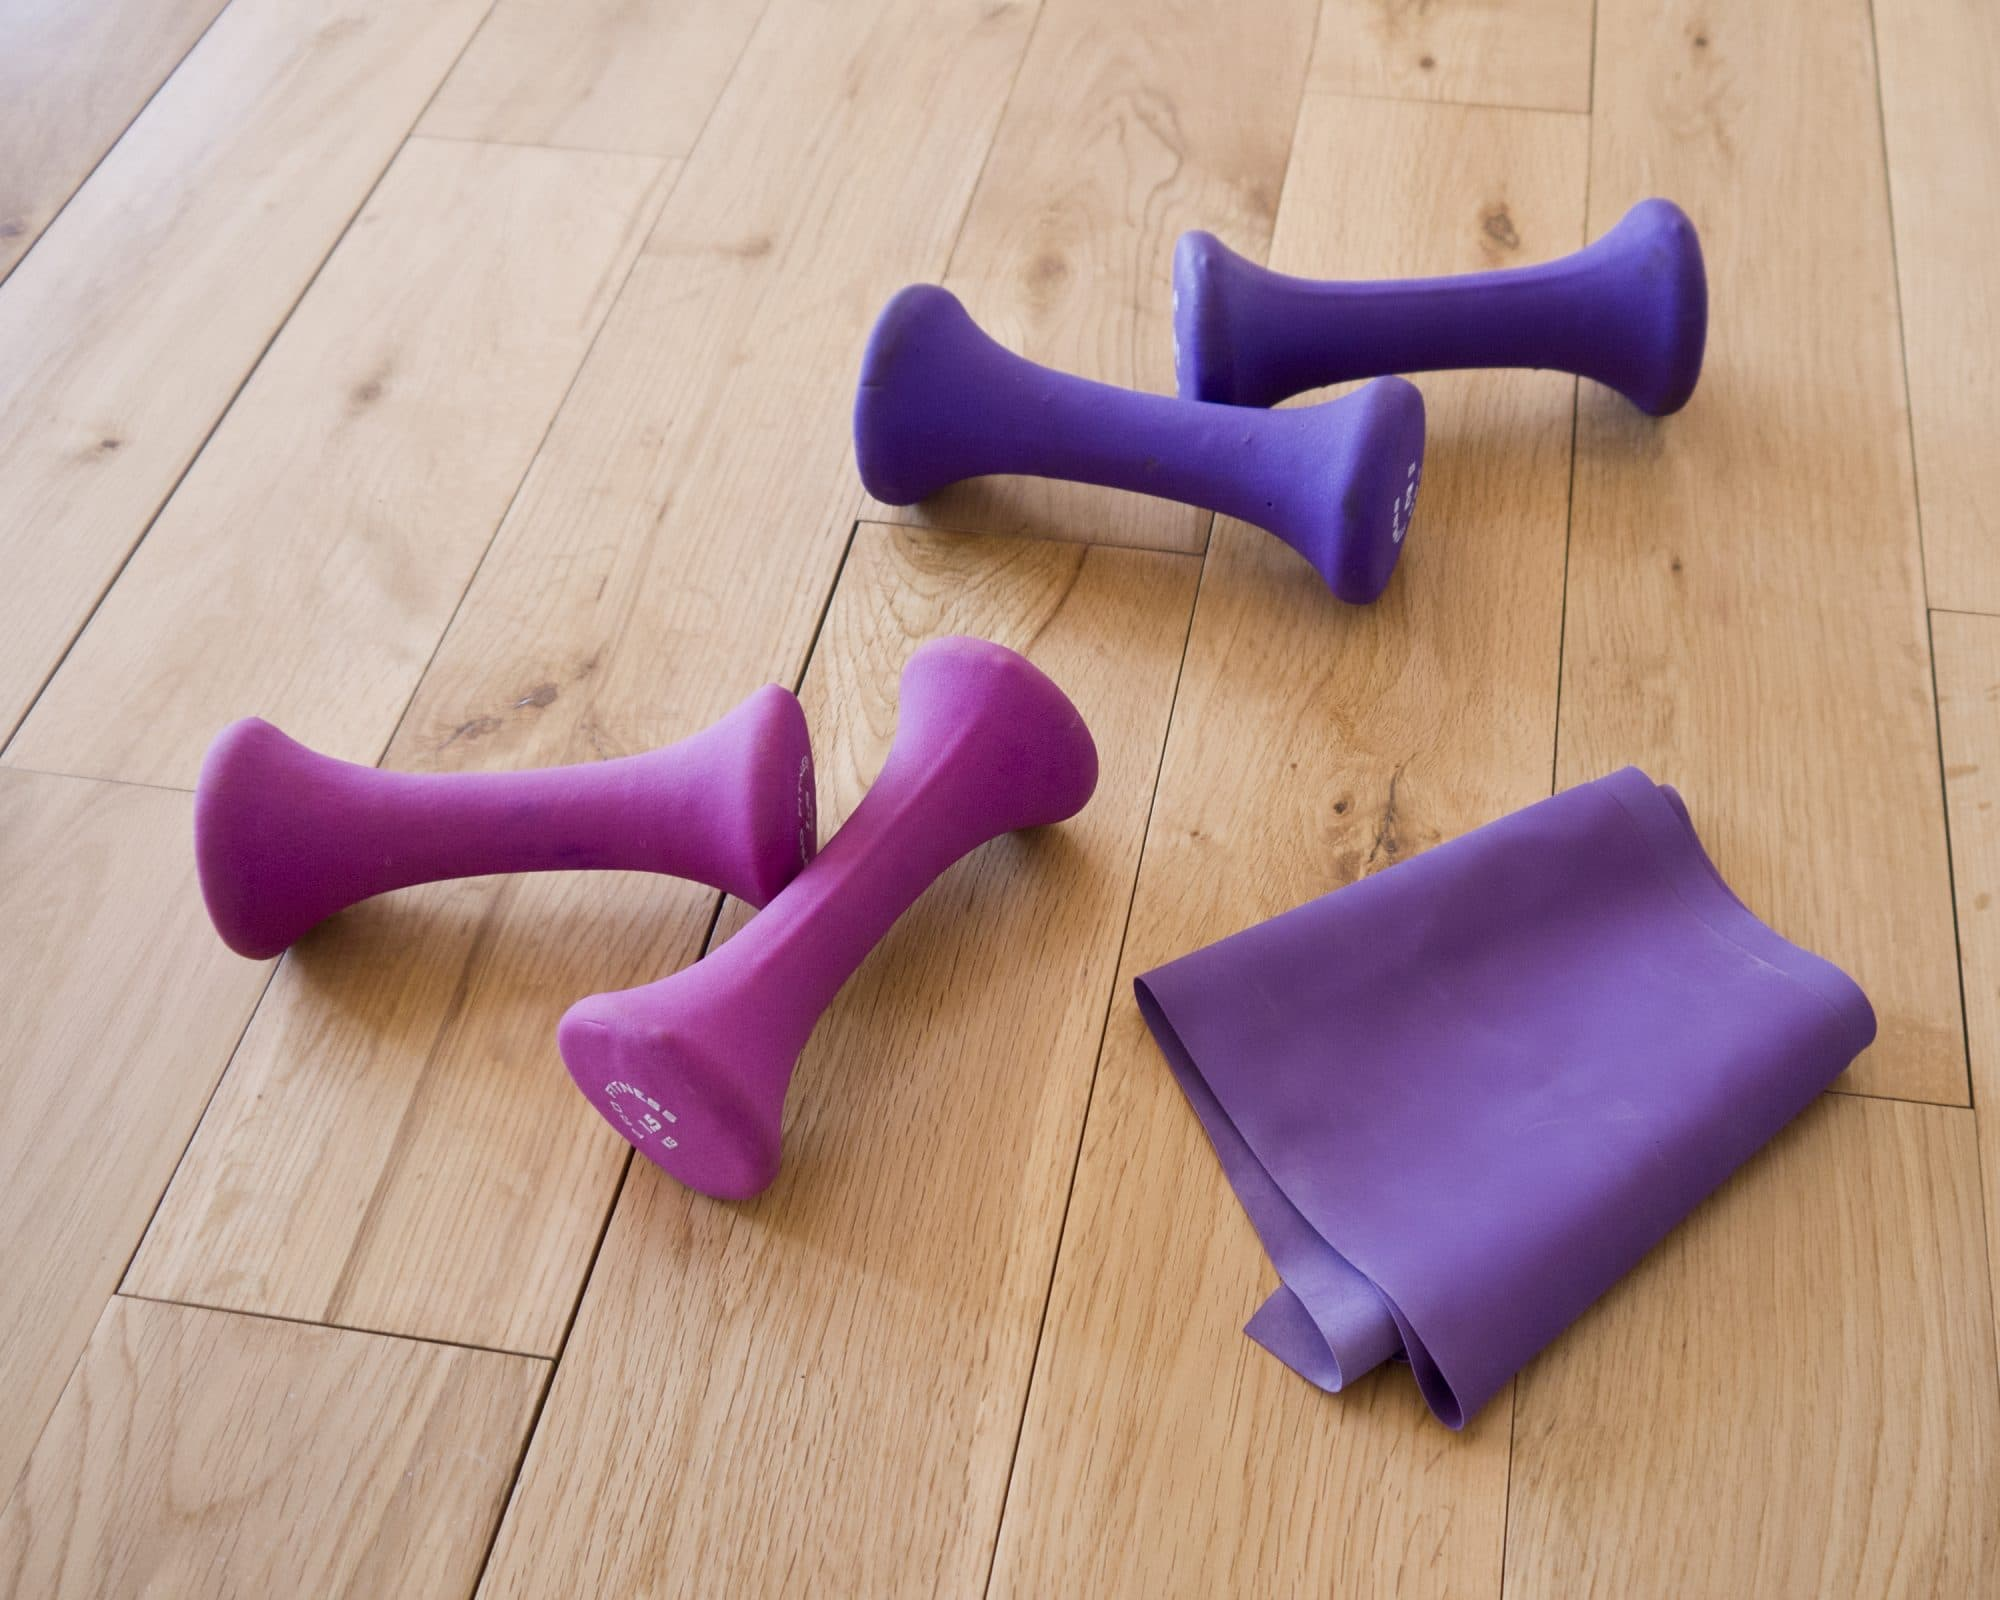 What do you need to bring to a Pilates class - Adele's Pilates